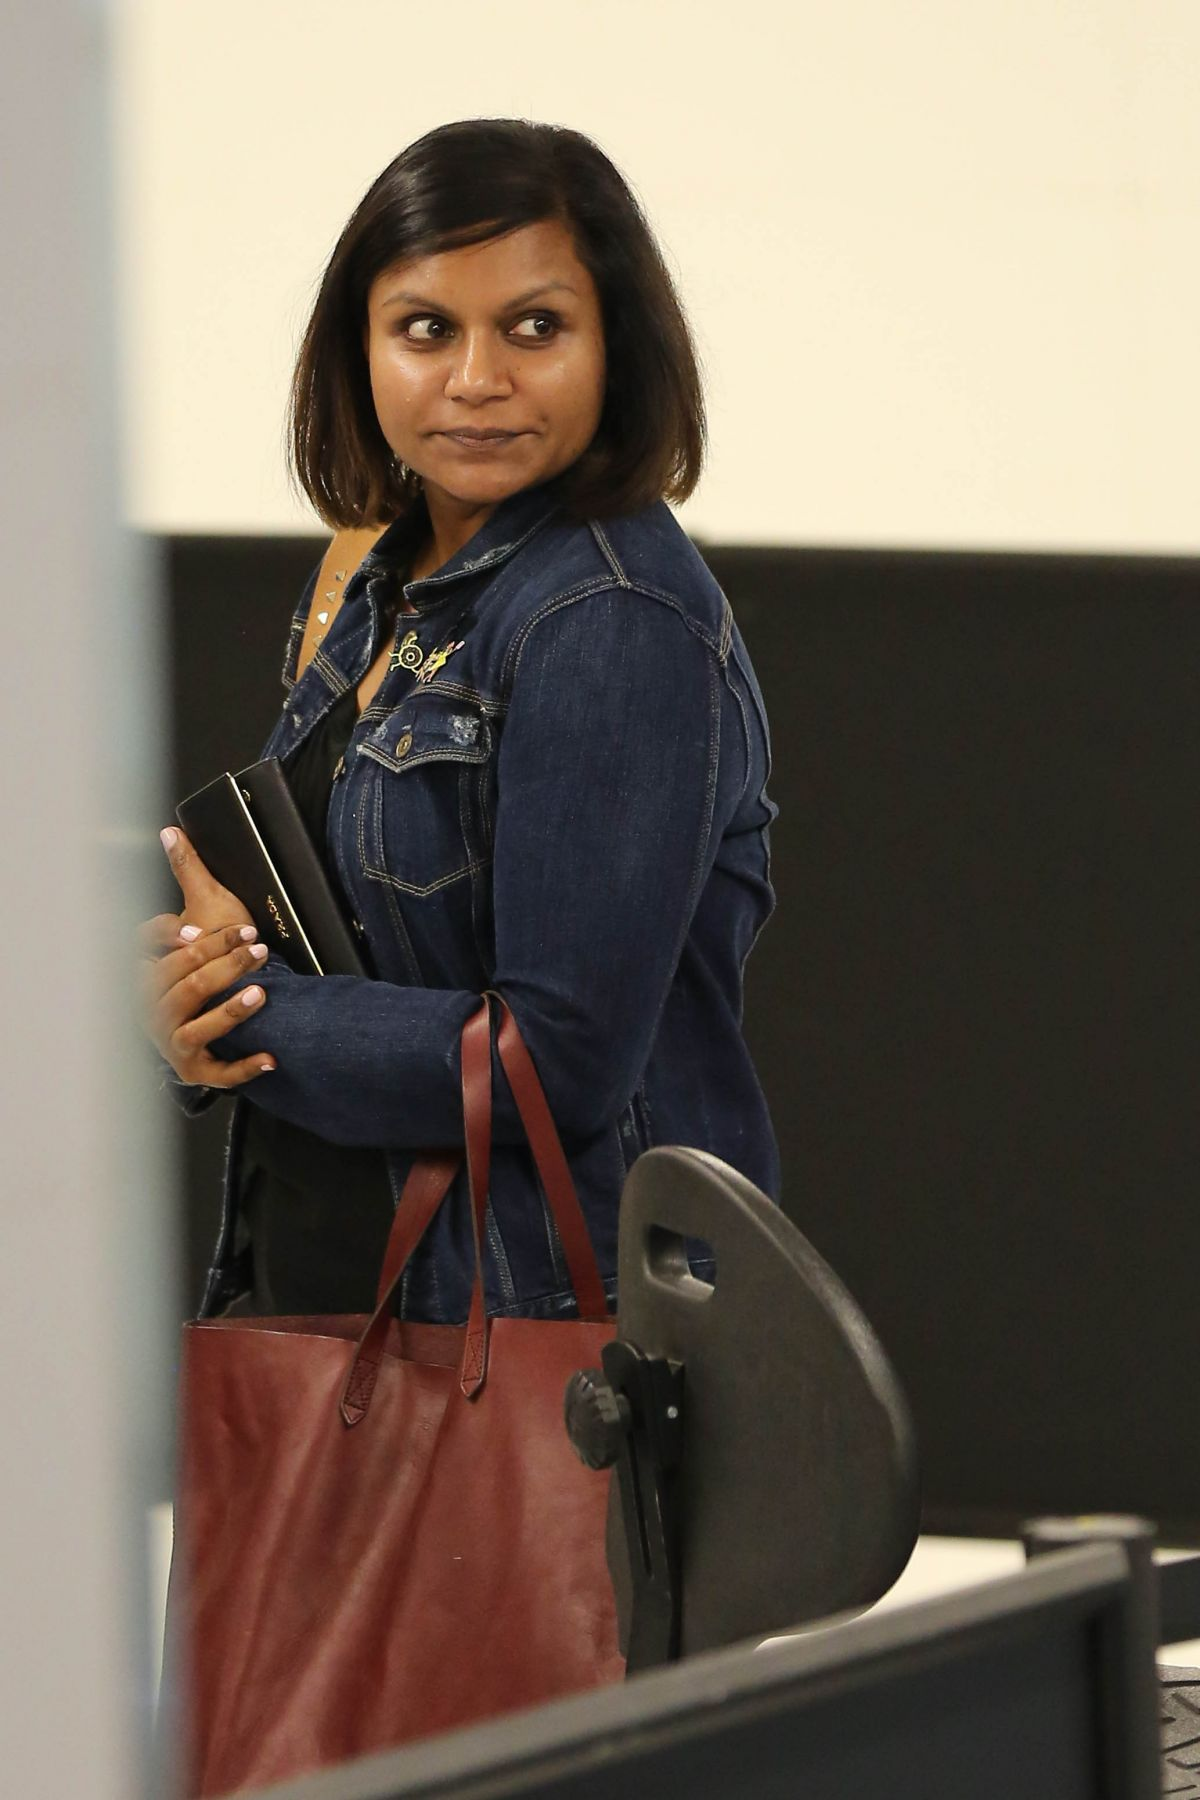 MINDY KALING at LAX Airport in Los Angeles 06/16/2015